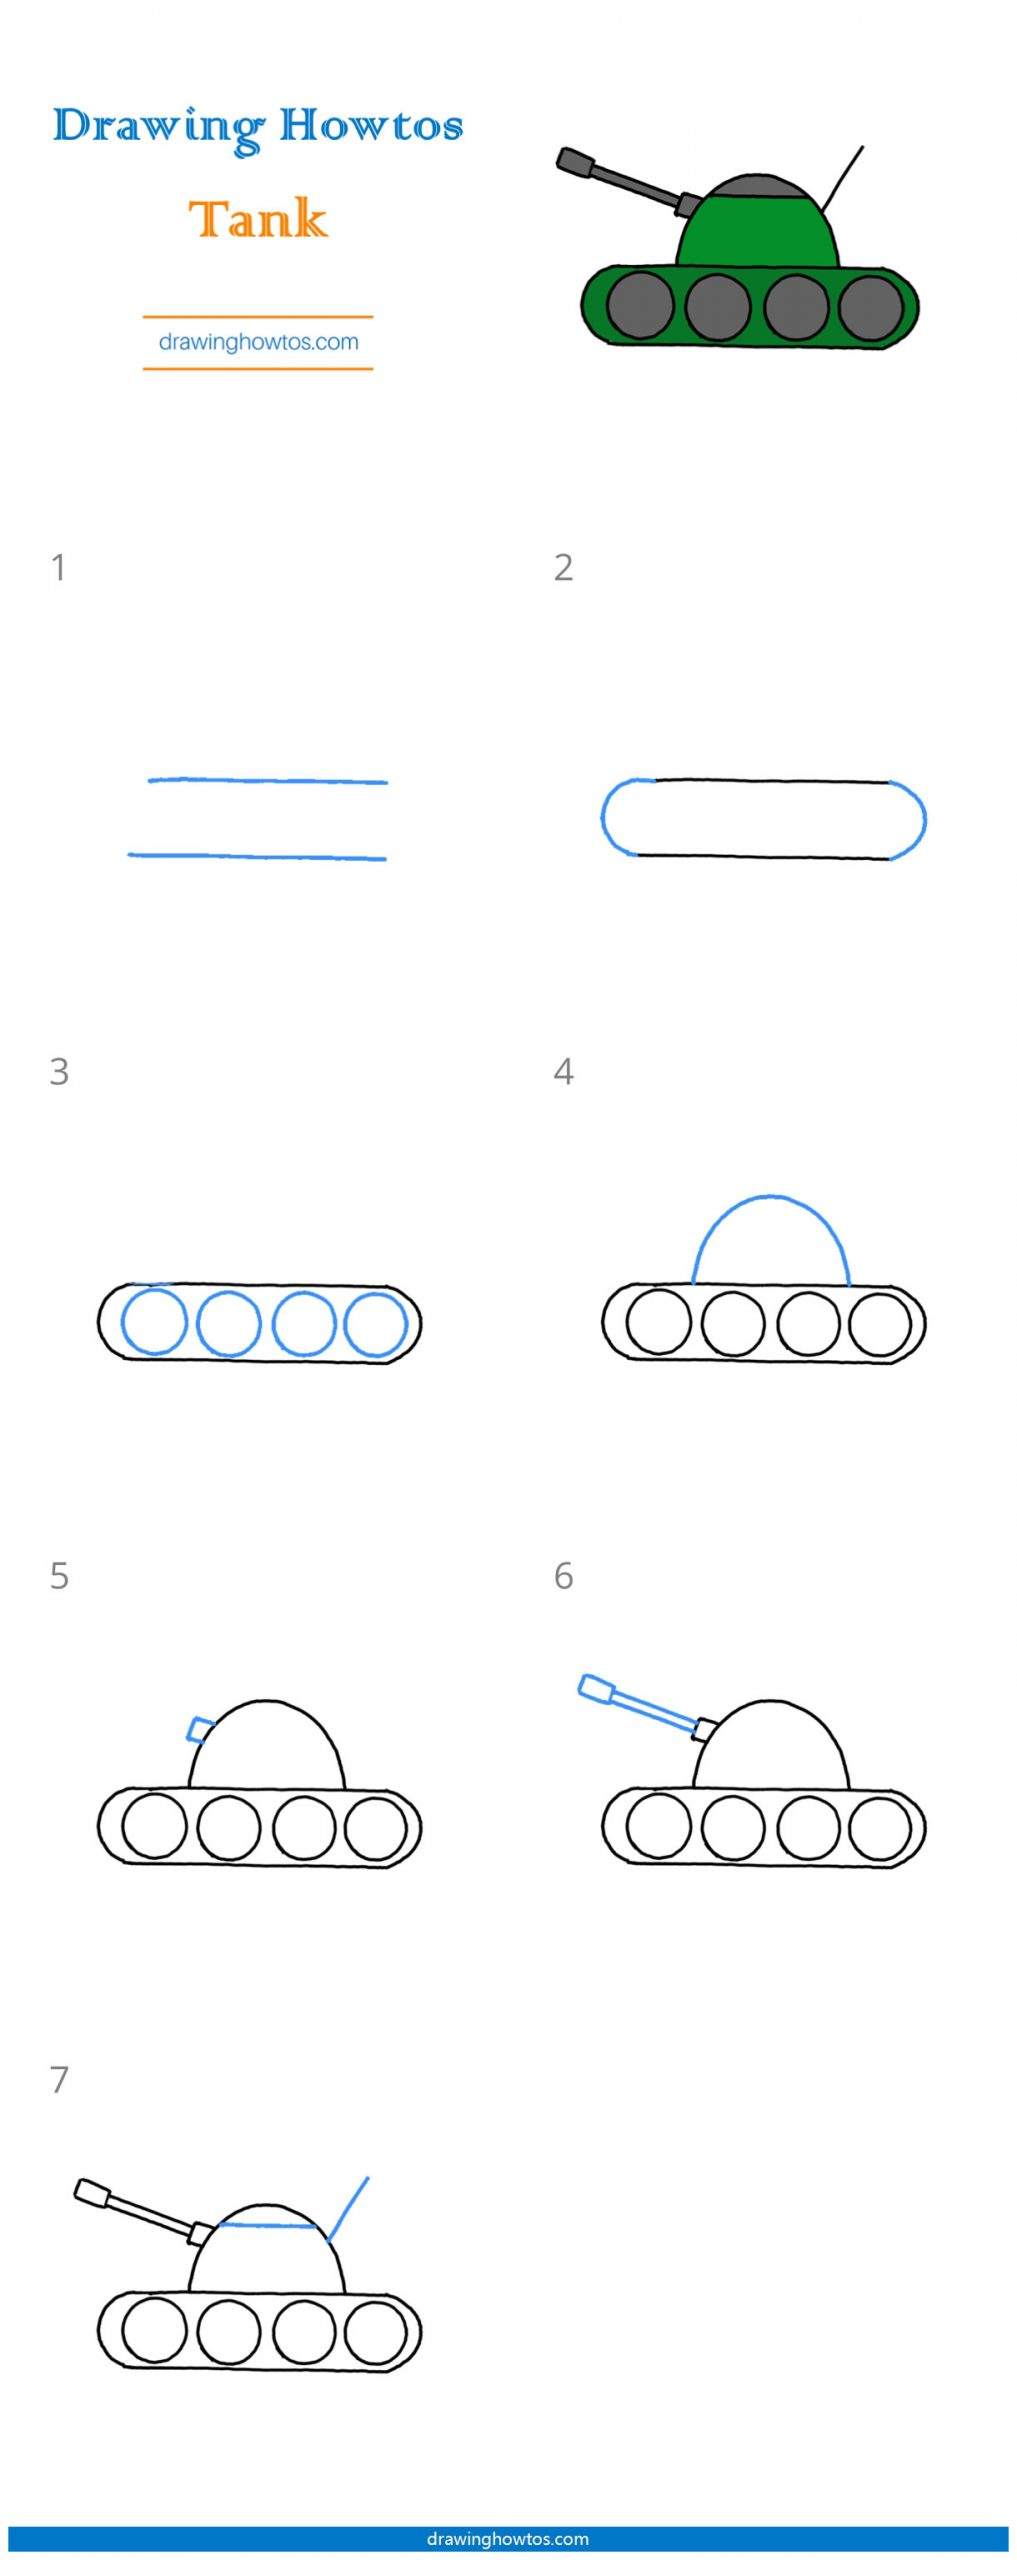 How To Draw A Tank Easy : Drawing, Guides, Howtos